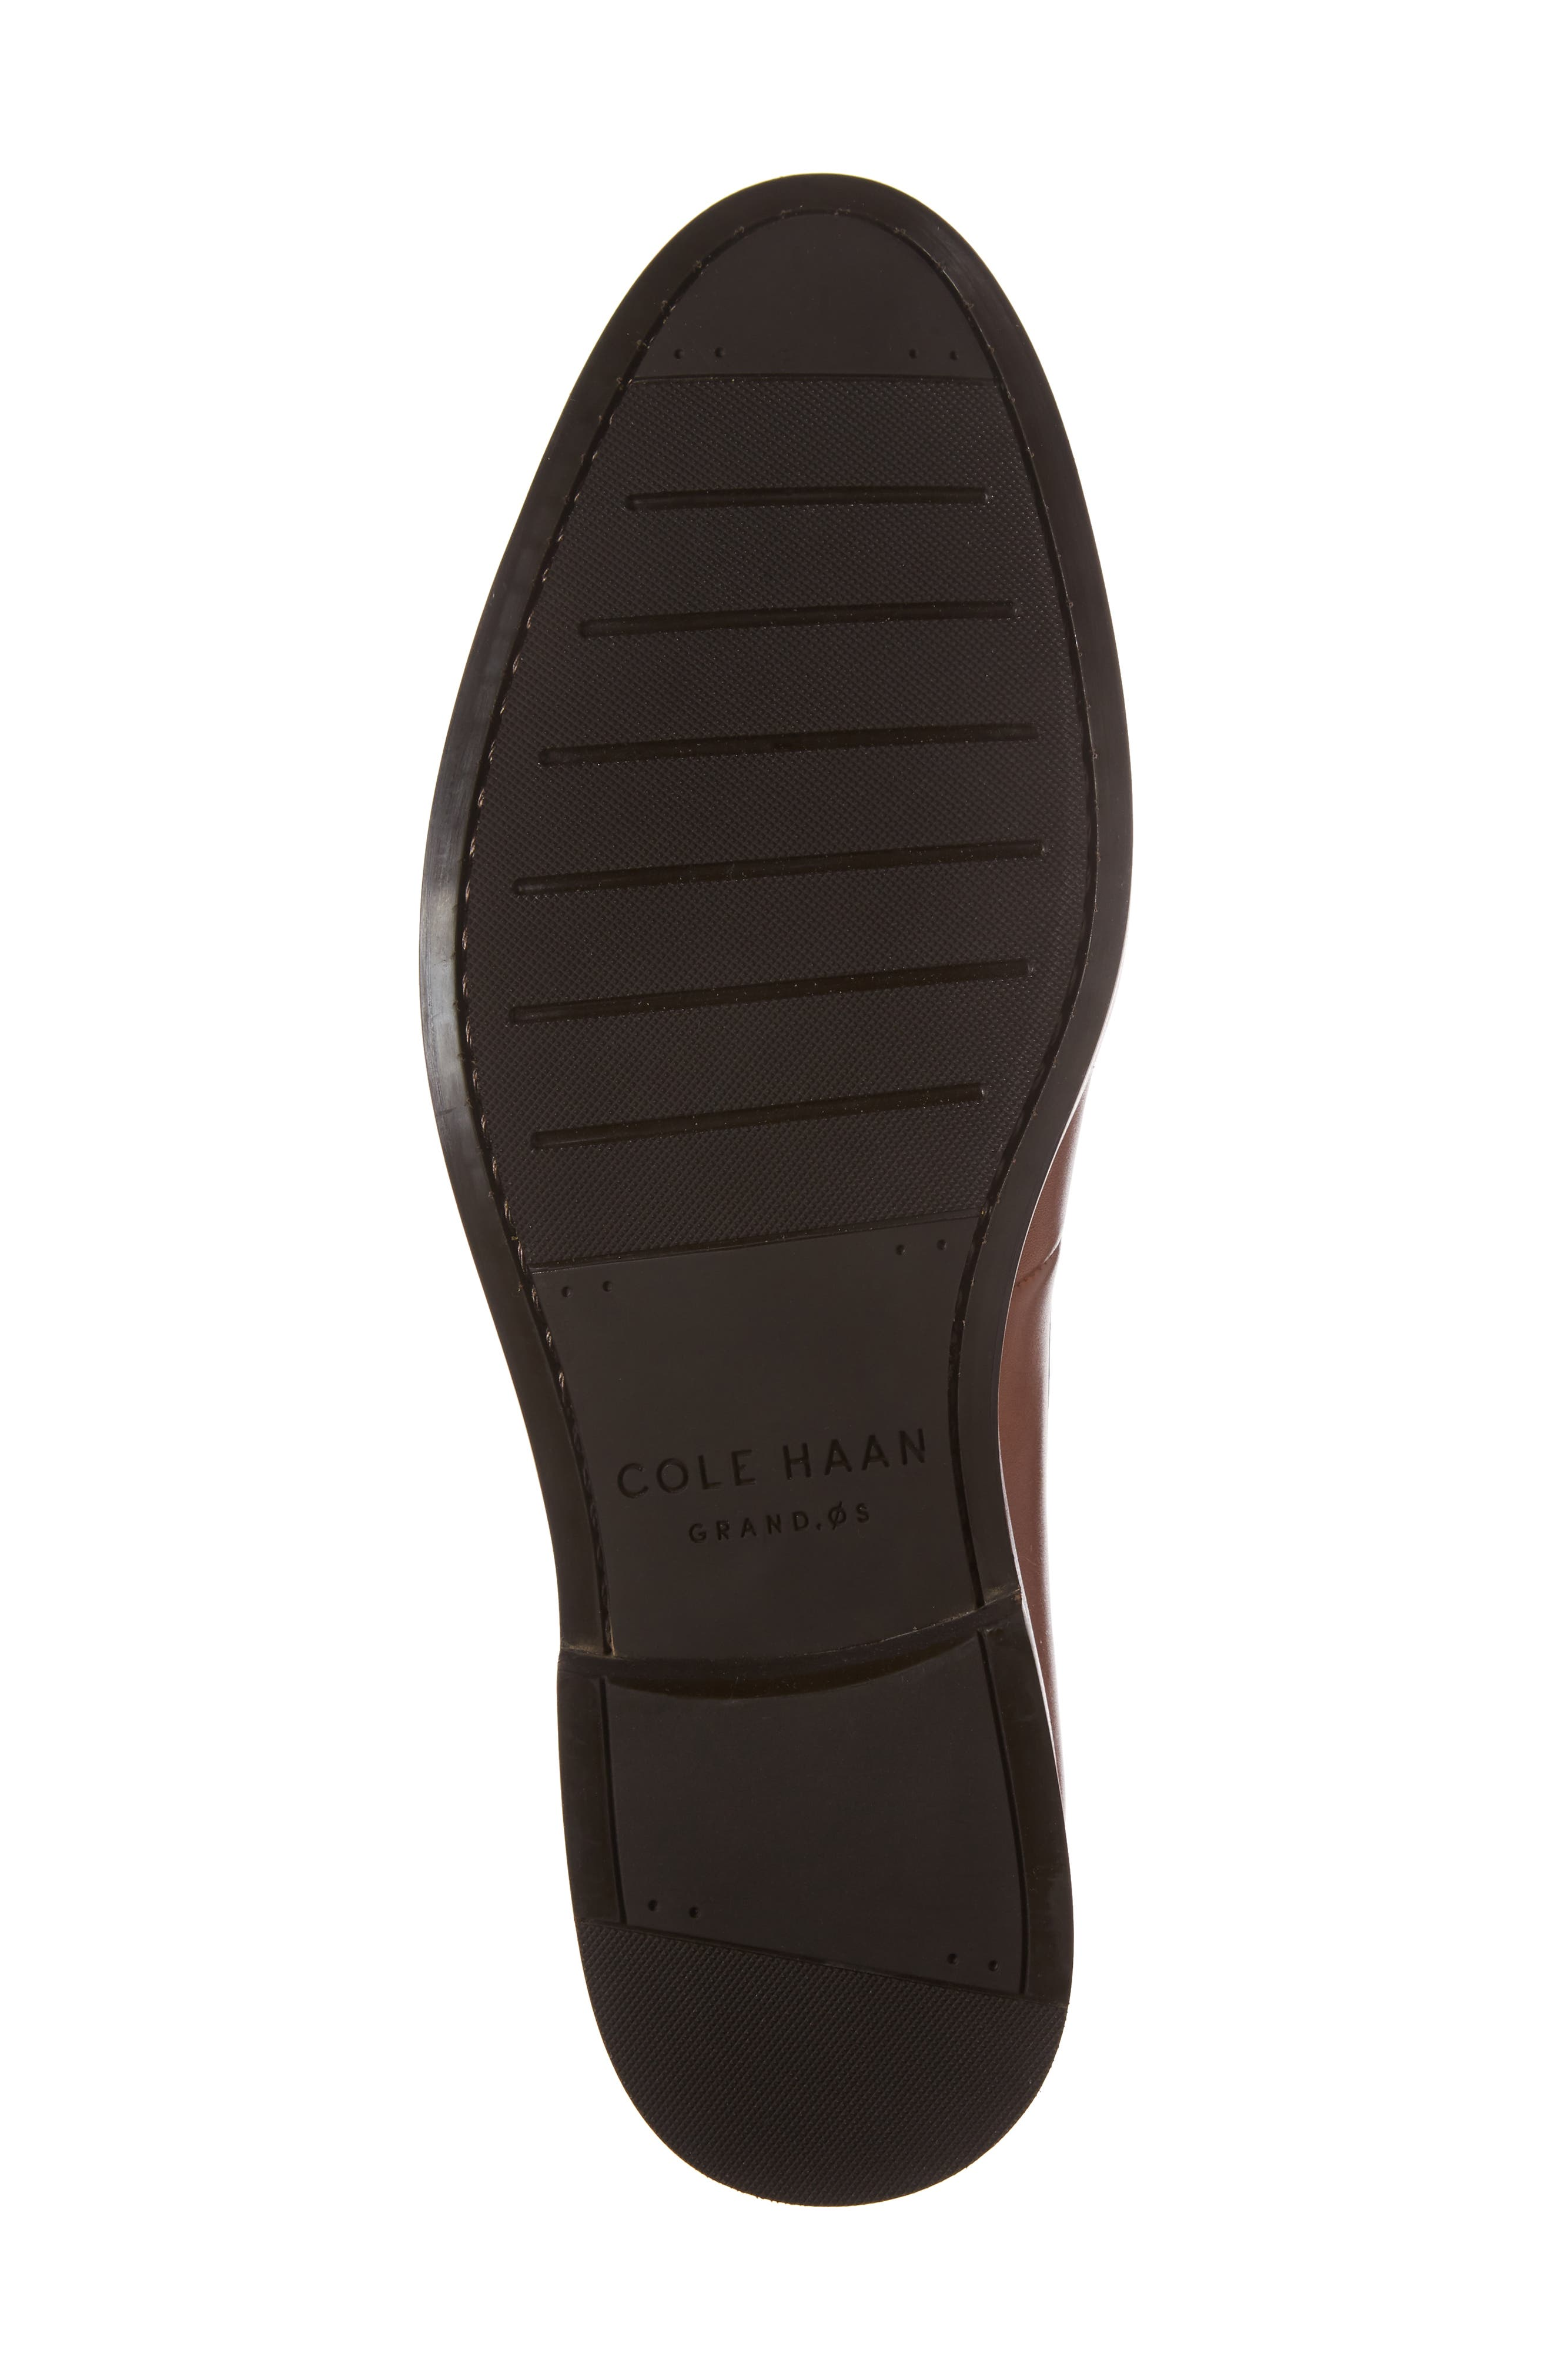 COLE HAAN, Harrison Grand Penny Loafer, Alternate thumbnail 6, color, COGNAC/ DARK NATURAL LEATHER